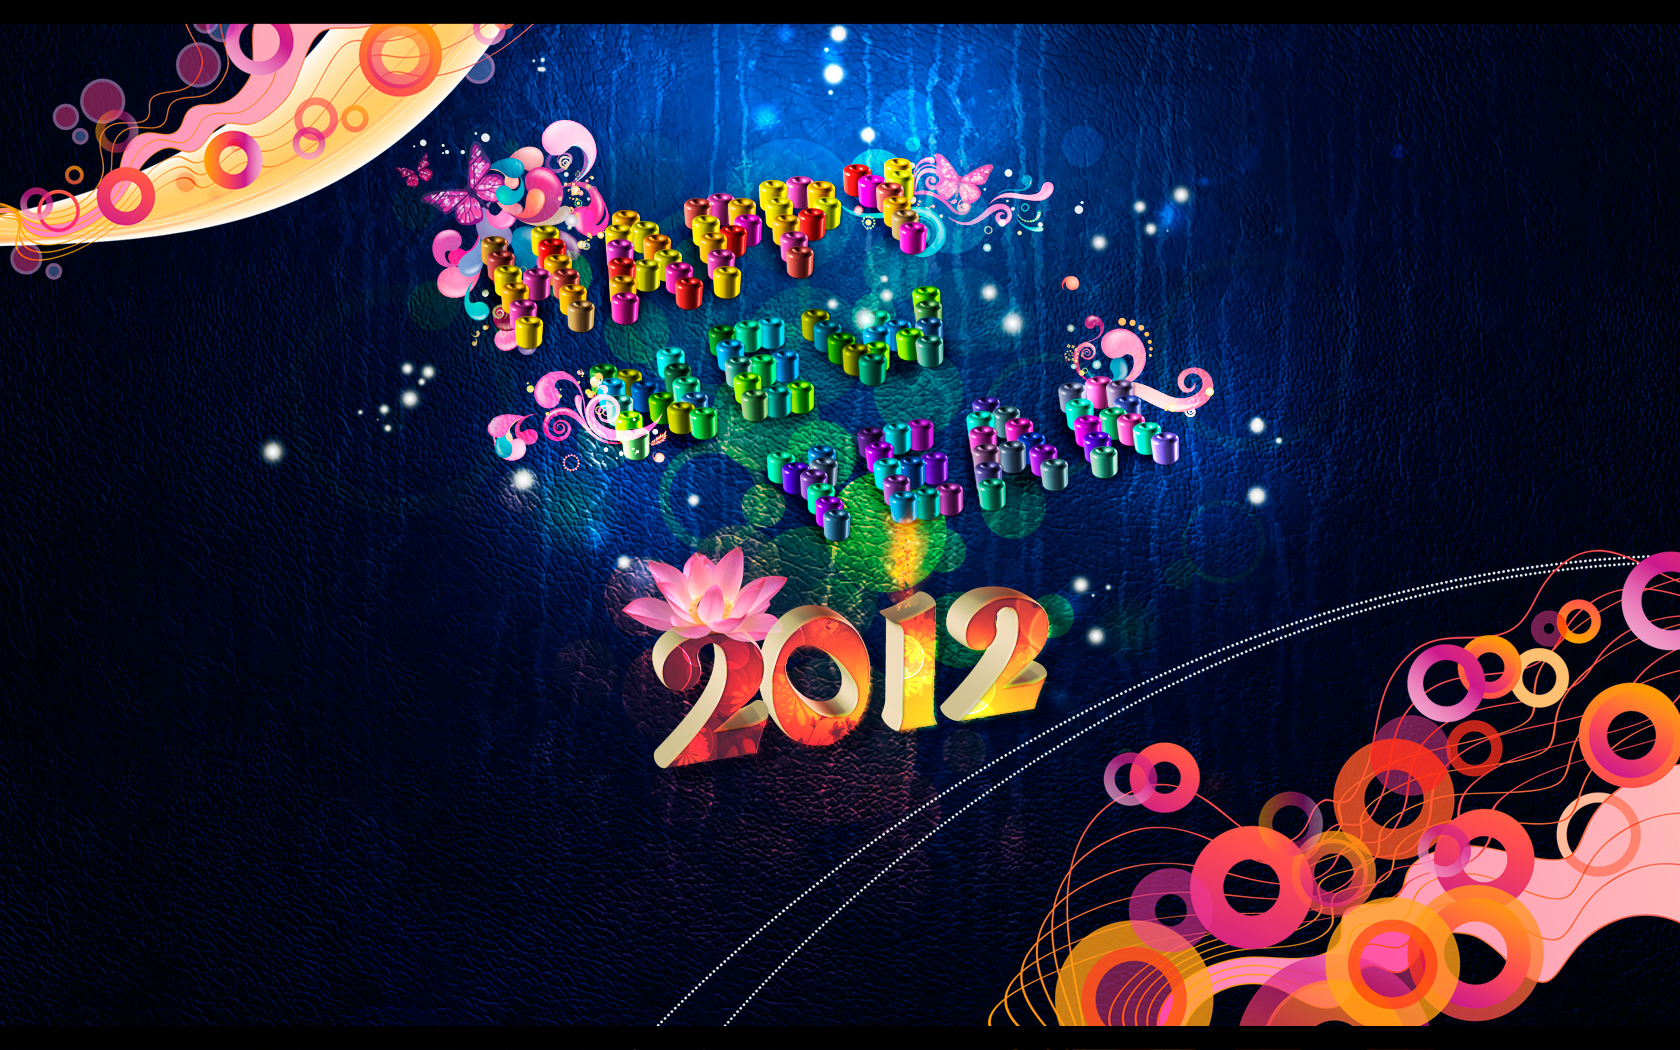 http://fc05.deviantart.net/fs71/f/2011/292/4/e/happy_new_year_2012_by_aeli9-d4dbshn.jpg